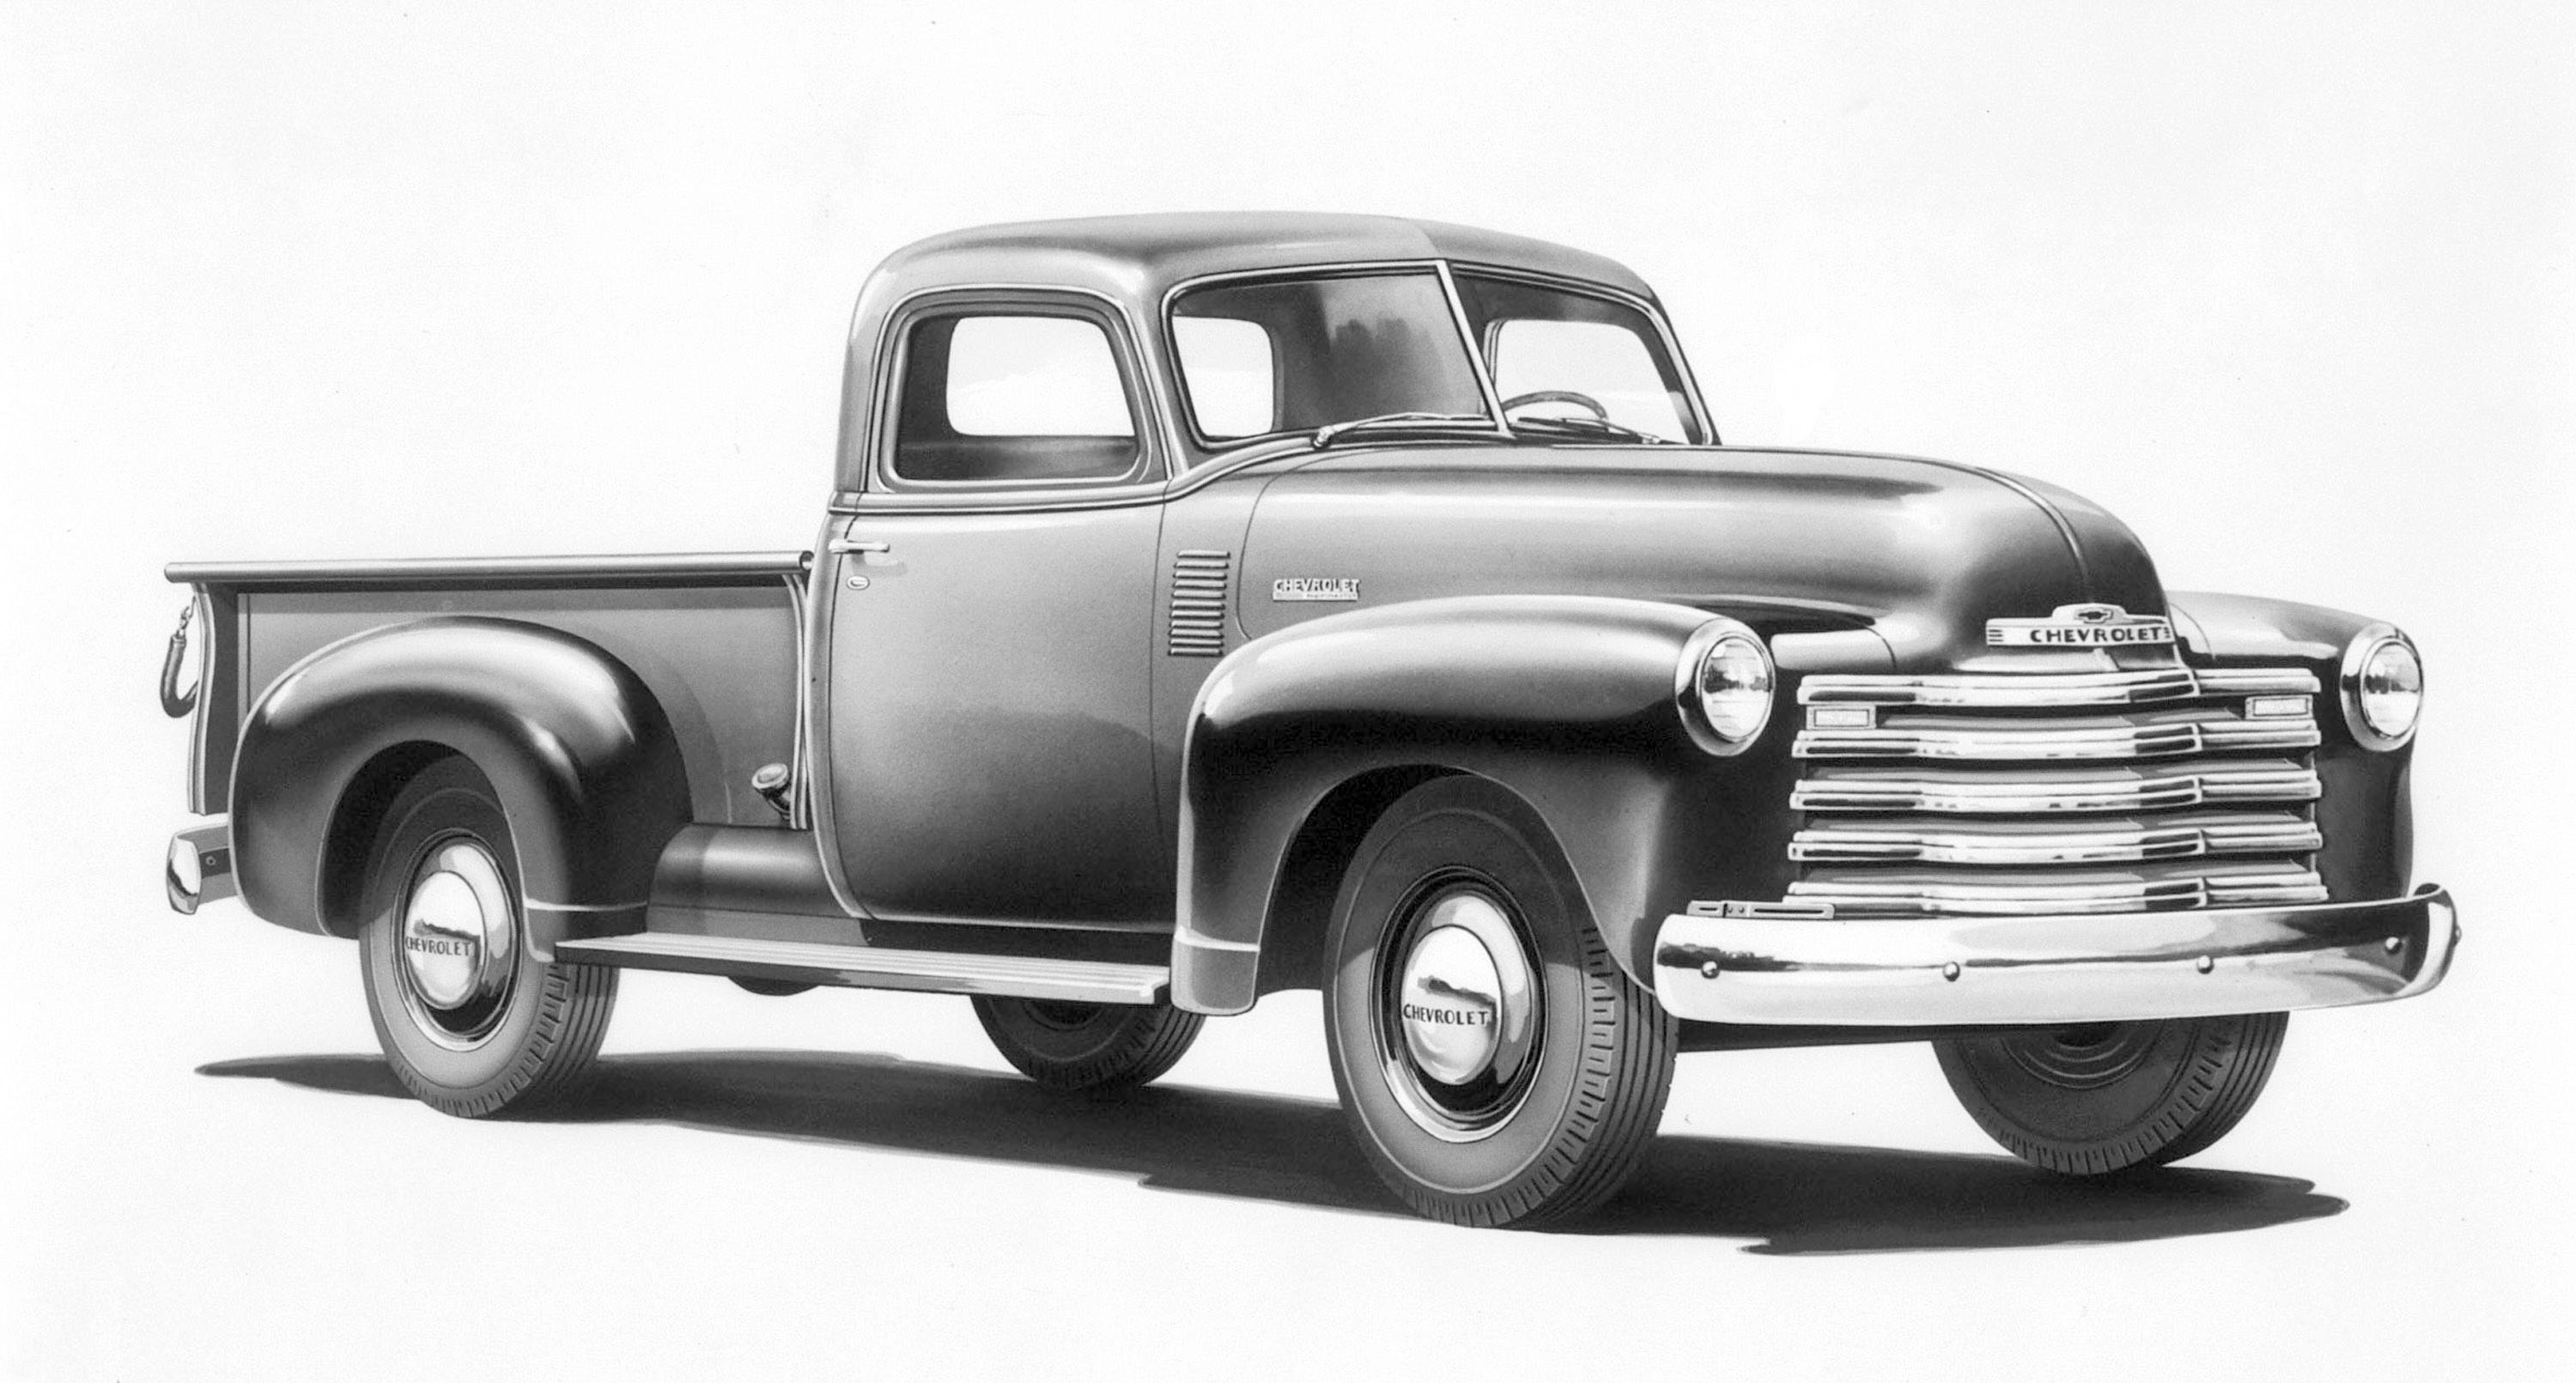 GMC's first all-new vehicles after World War II, Chevy's Advance Design trucks for 1948 were reliable, versatile and modern. The 3100 pickup was the farmer and workingmans four-wheeled friend.